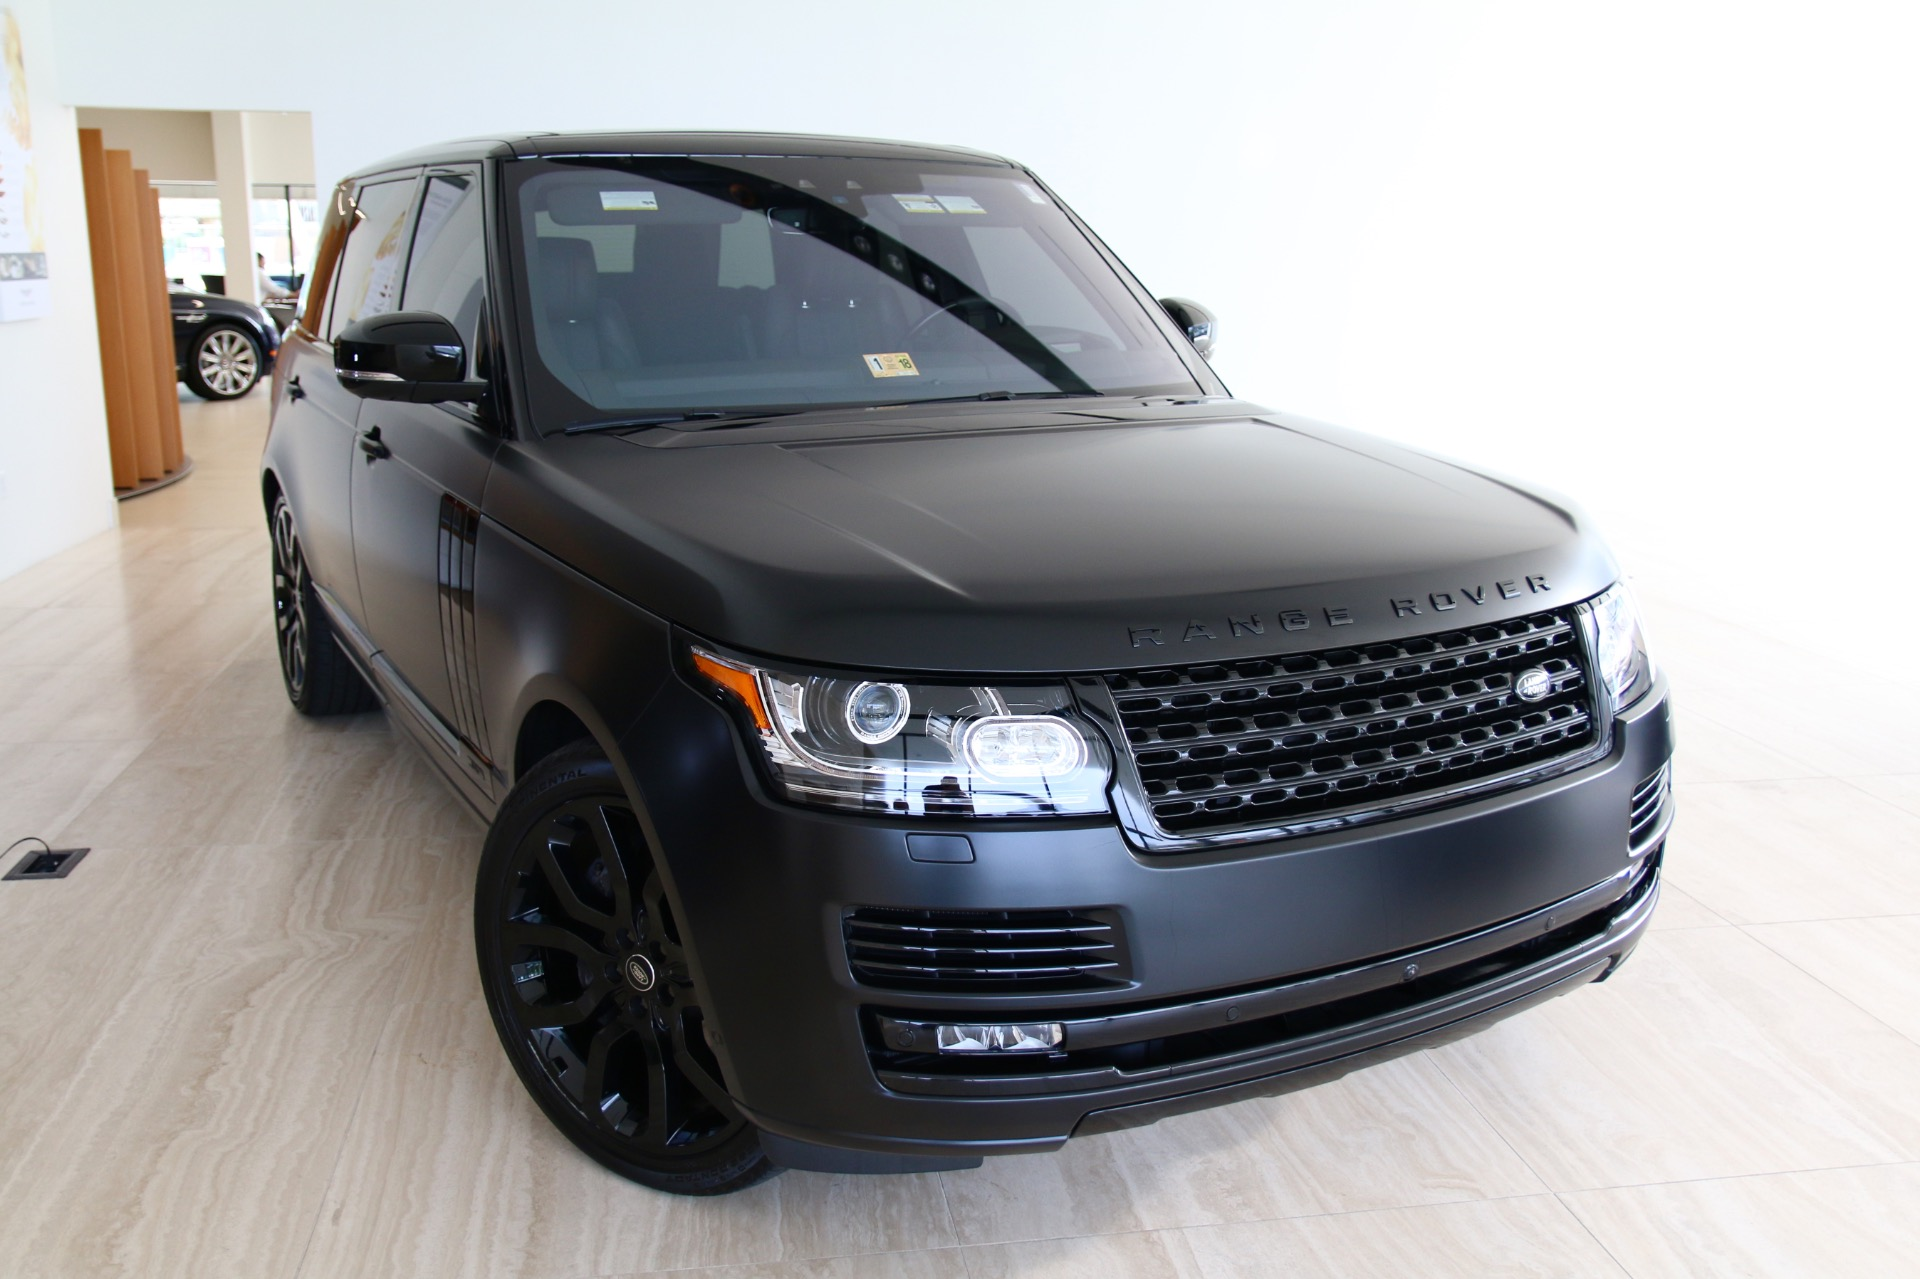 2017 Land Rover Range Rover Supercharged LWB Stock 8N A for